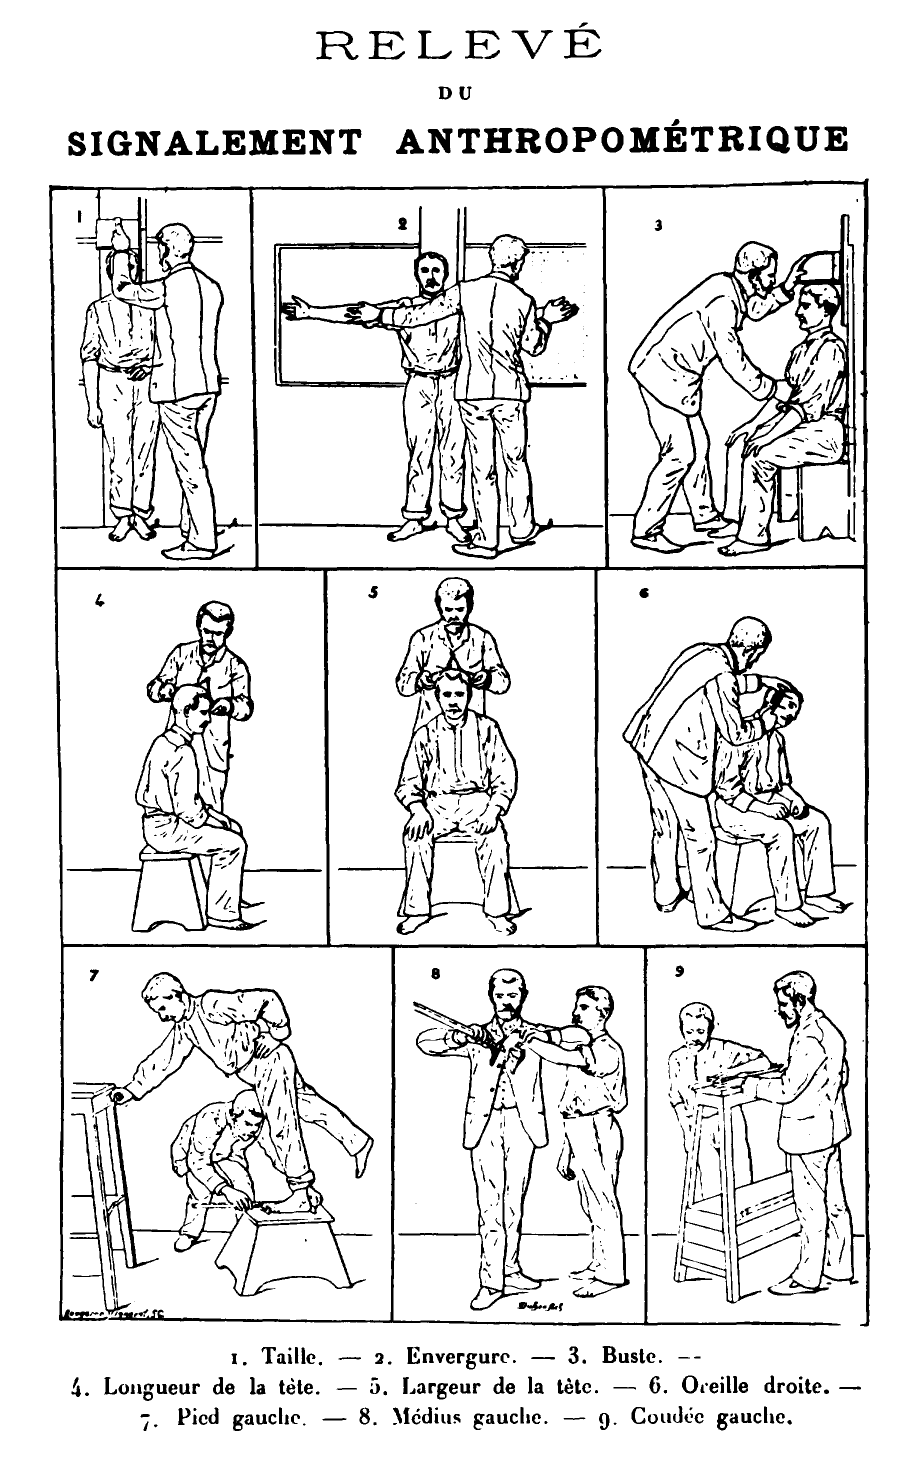 http://upload.wikimedia.org/wikipedia/commons/7/74/Bertillon_-_Signalement_Anthropometrique.png